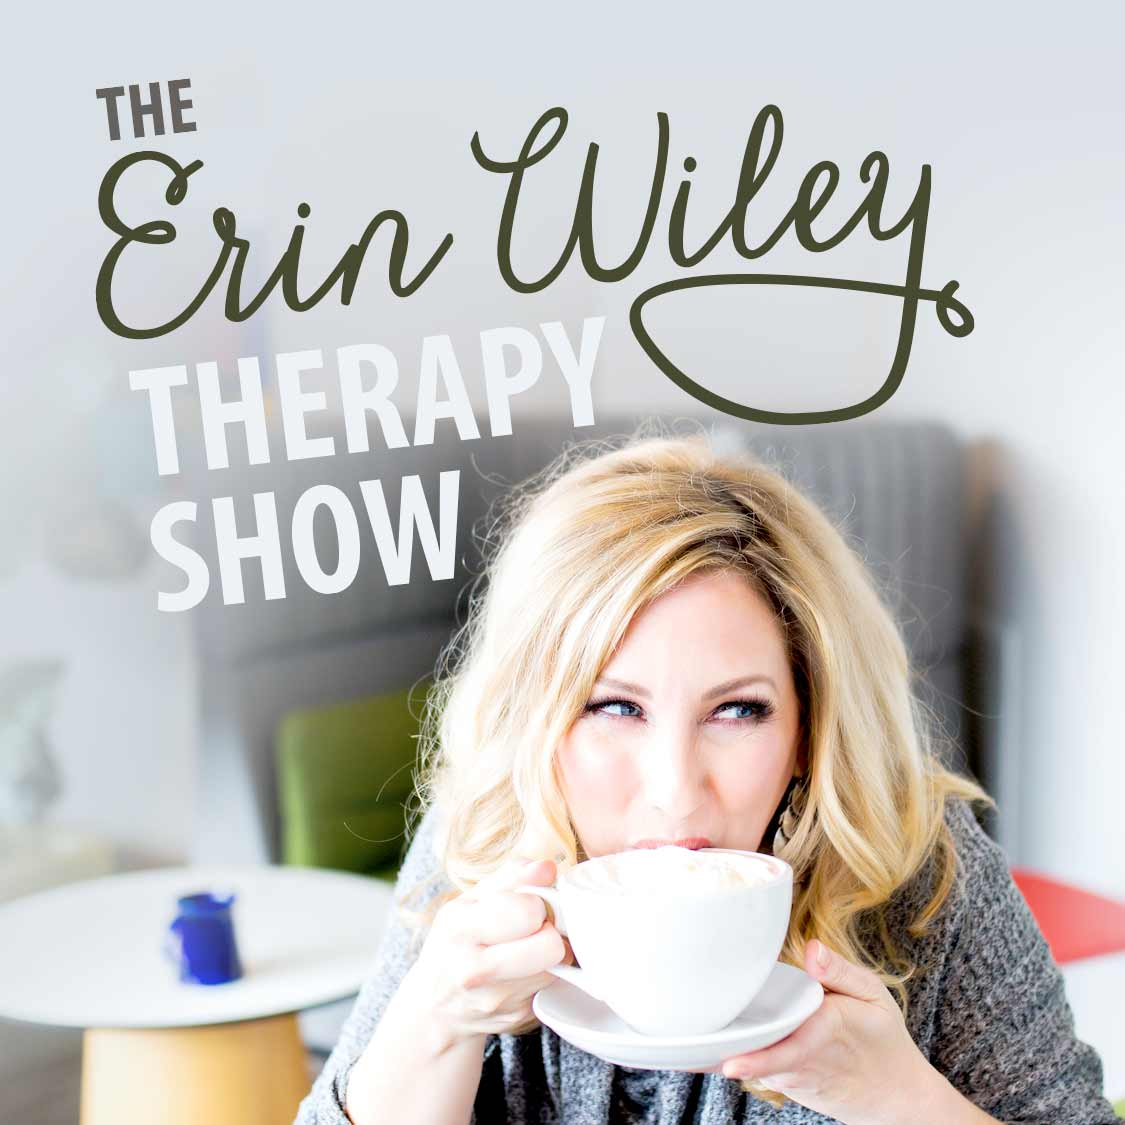 Manage Your Shift with Erin Wiley Therapy Show Podcast